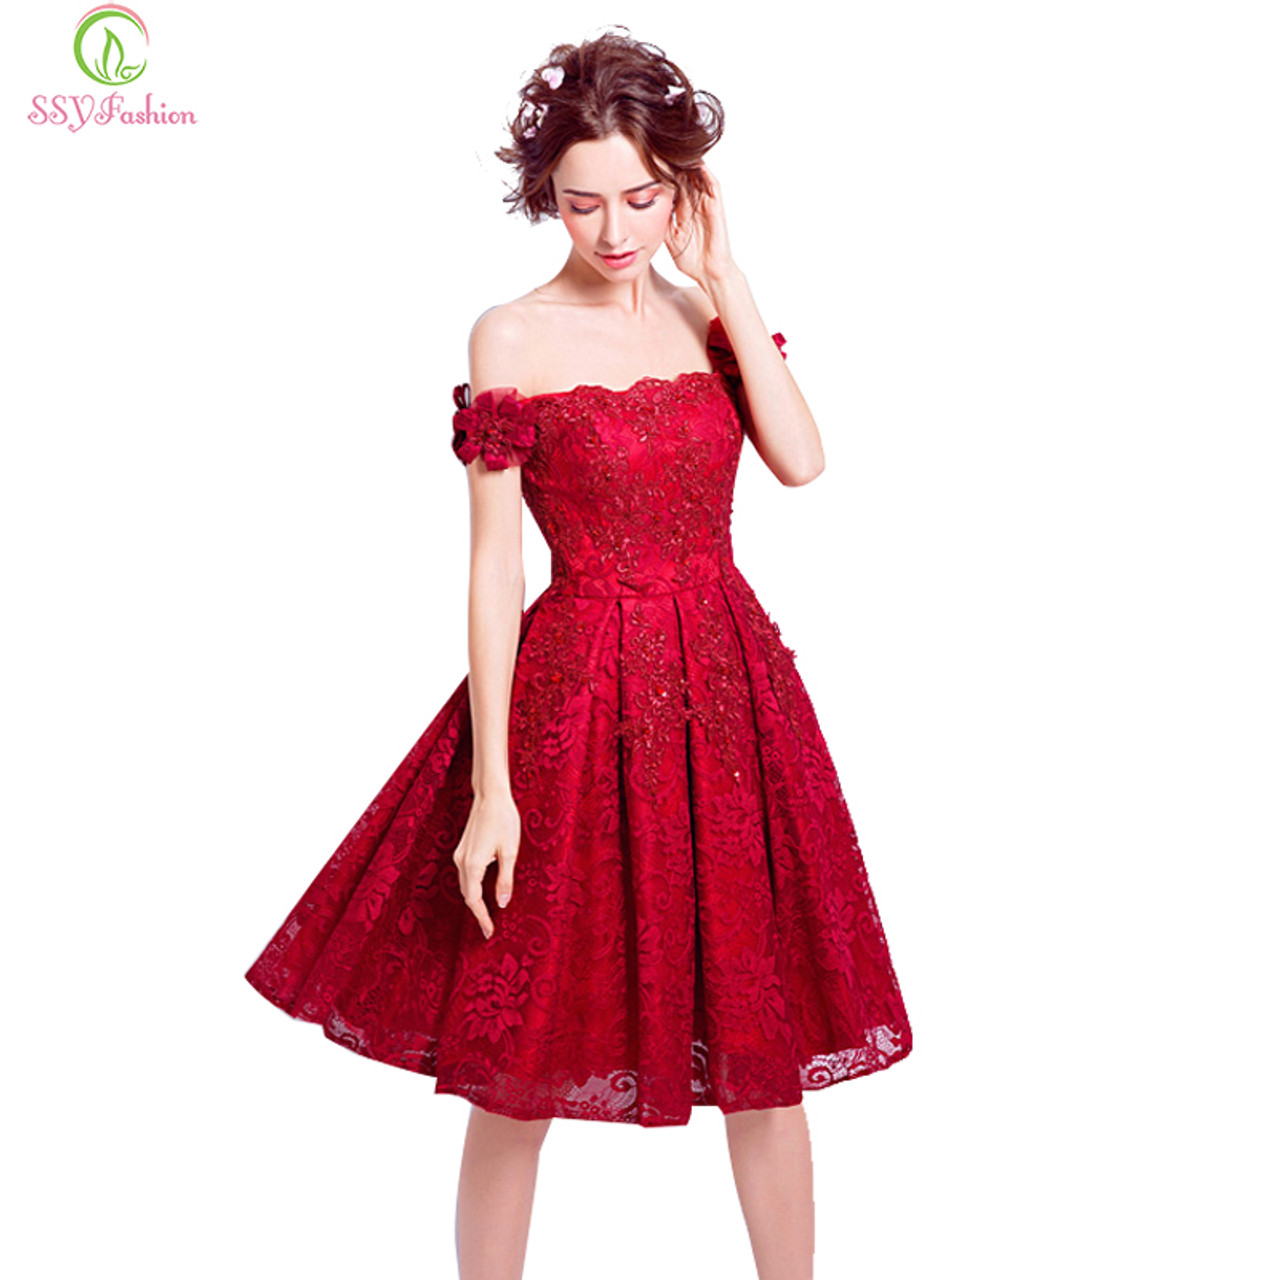 062c0b93503d9 SSYFashion New Red Lace Flower Short Cocktail Dress The Bride Married  Banquet Embroidery Boat Neck Knee ...